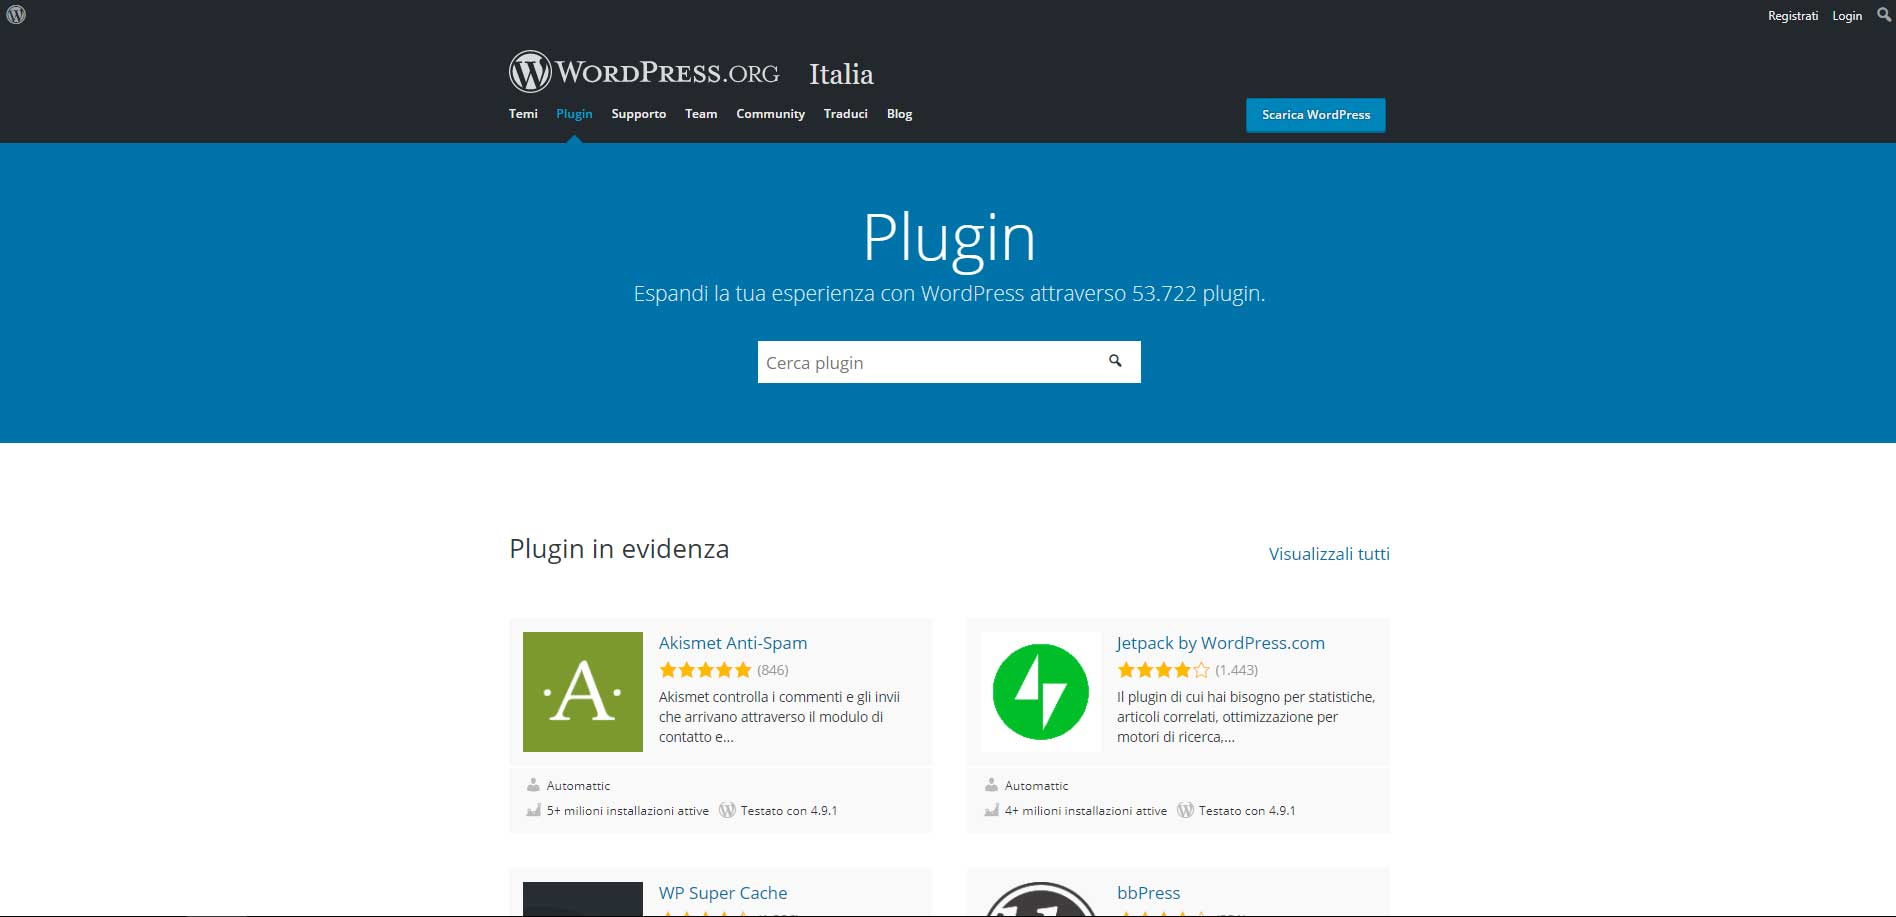 Schermata plugin di wordpress.org